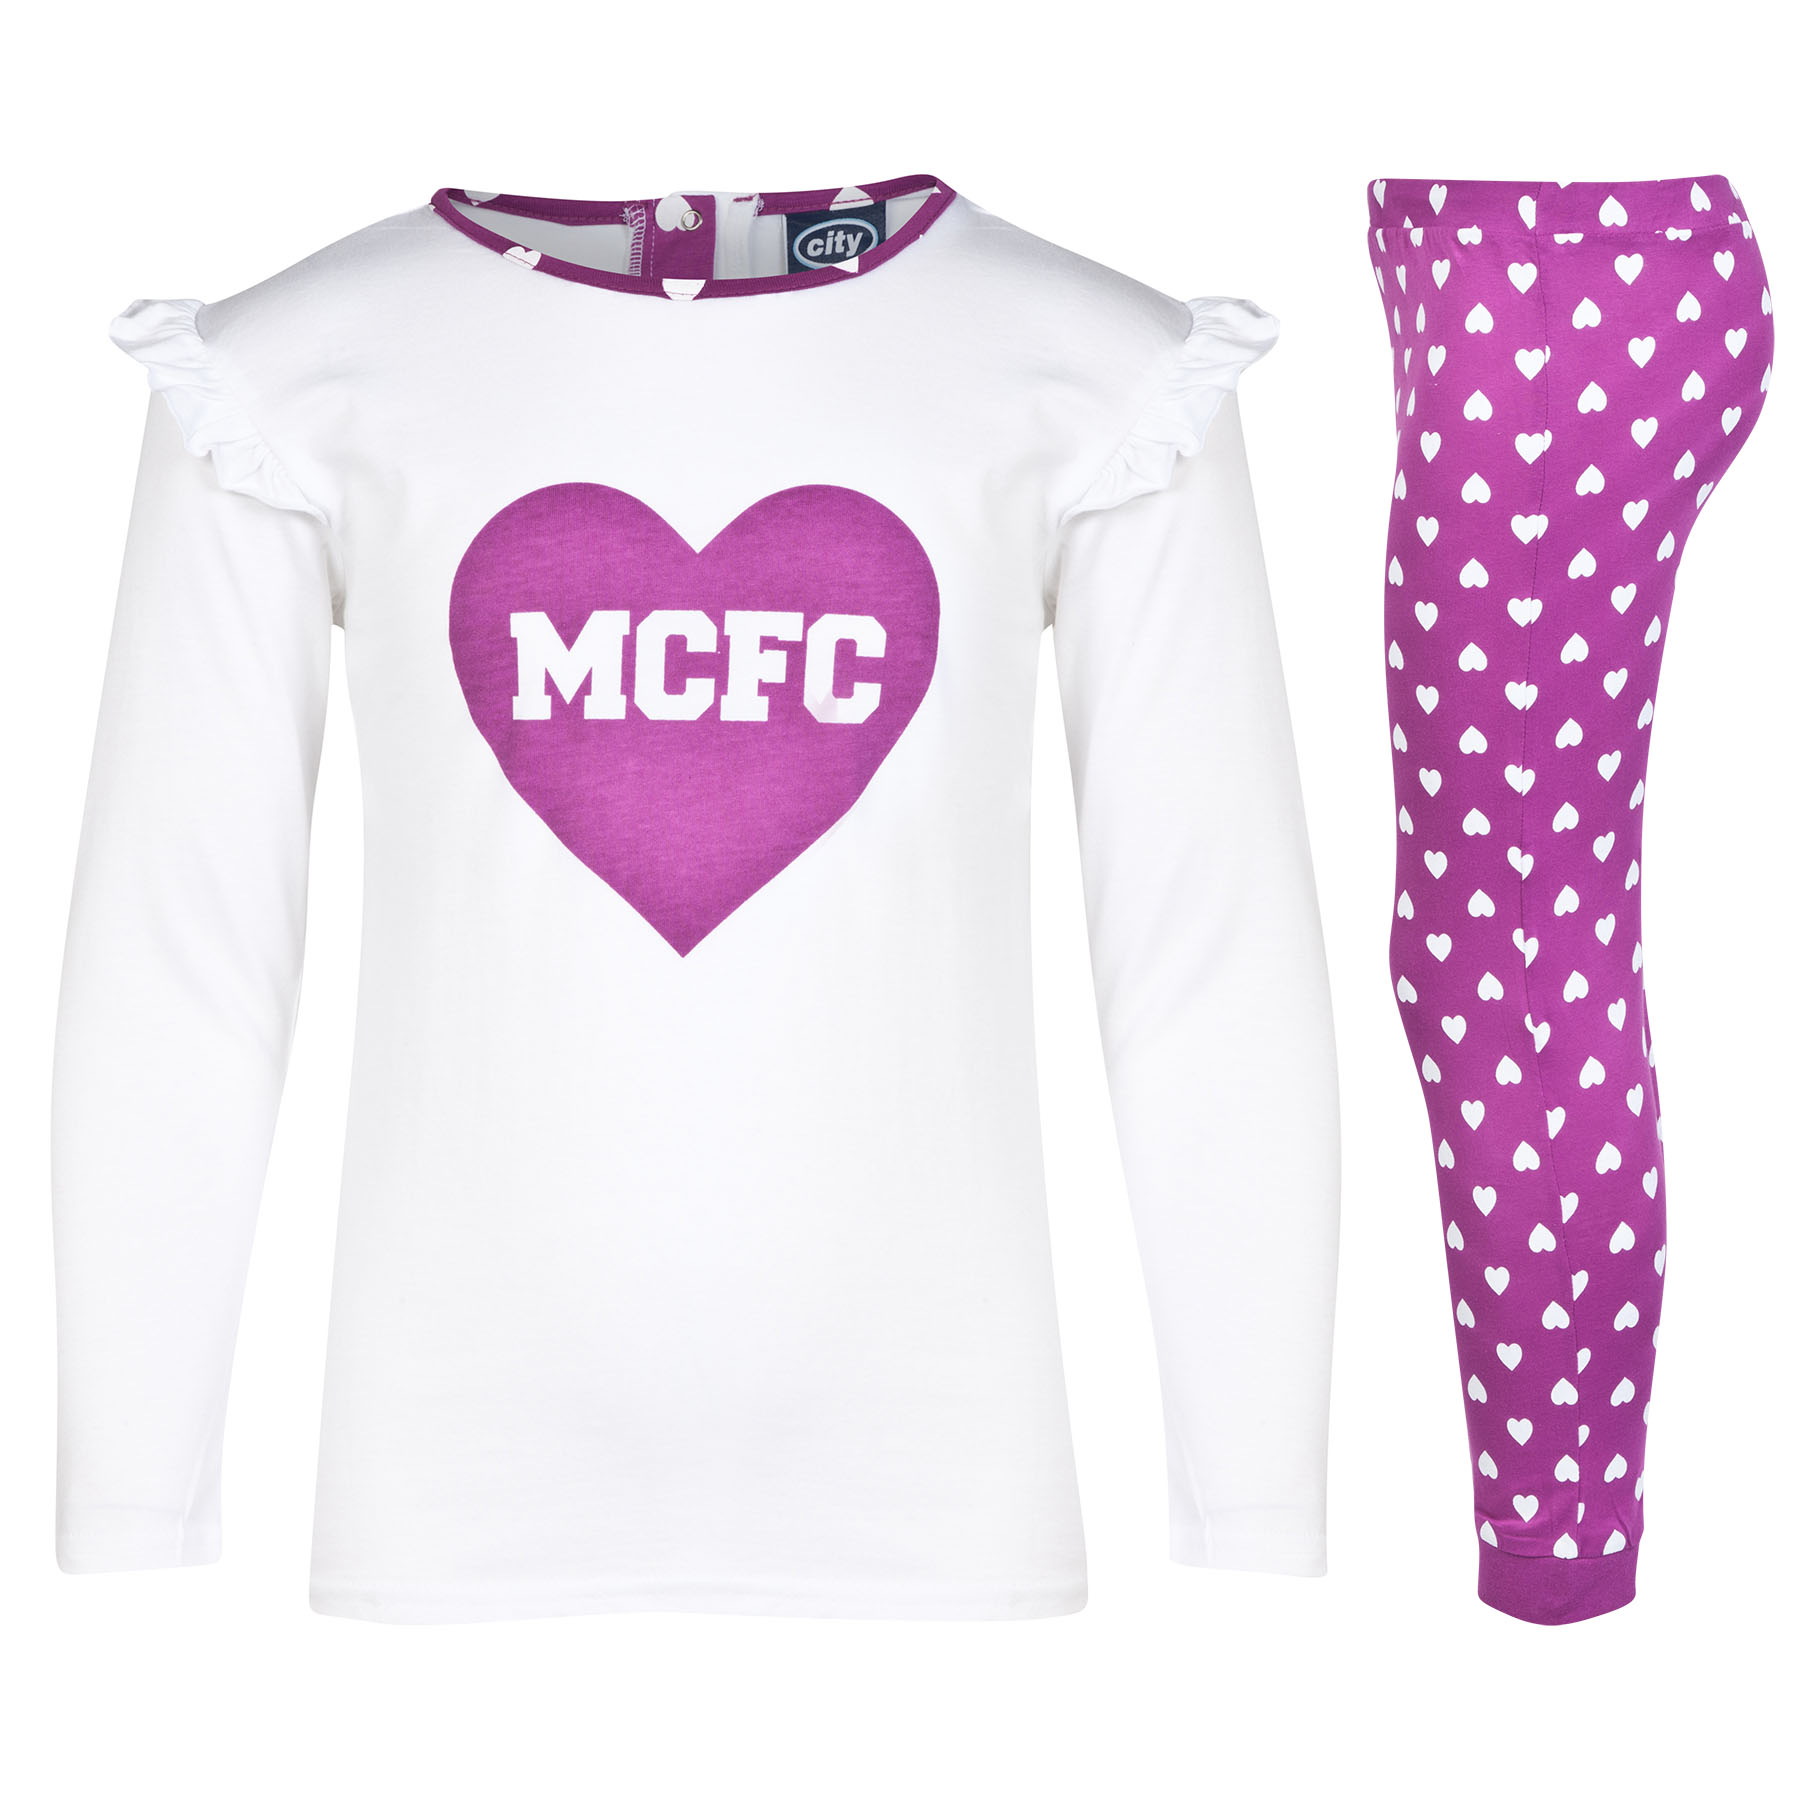 Manchester City Pyjamas - Magenta Pink/White - Girls